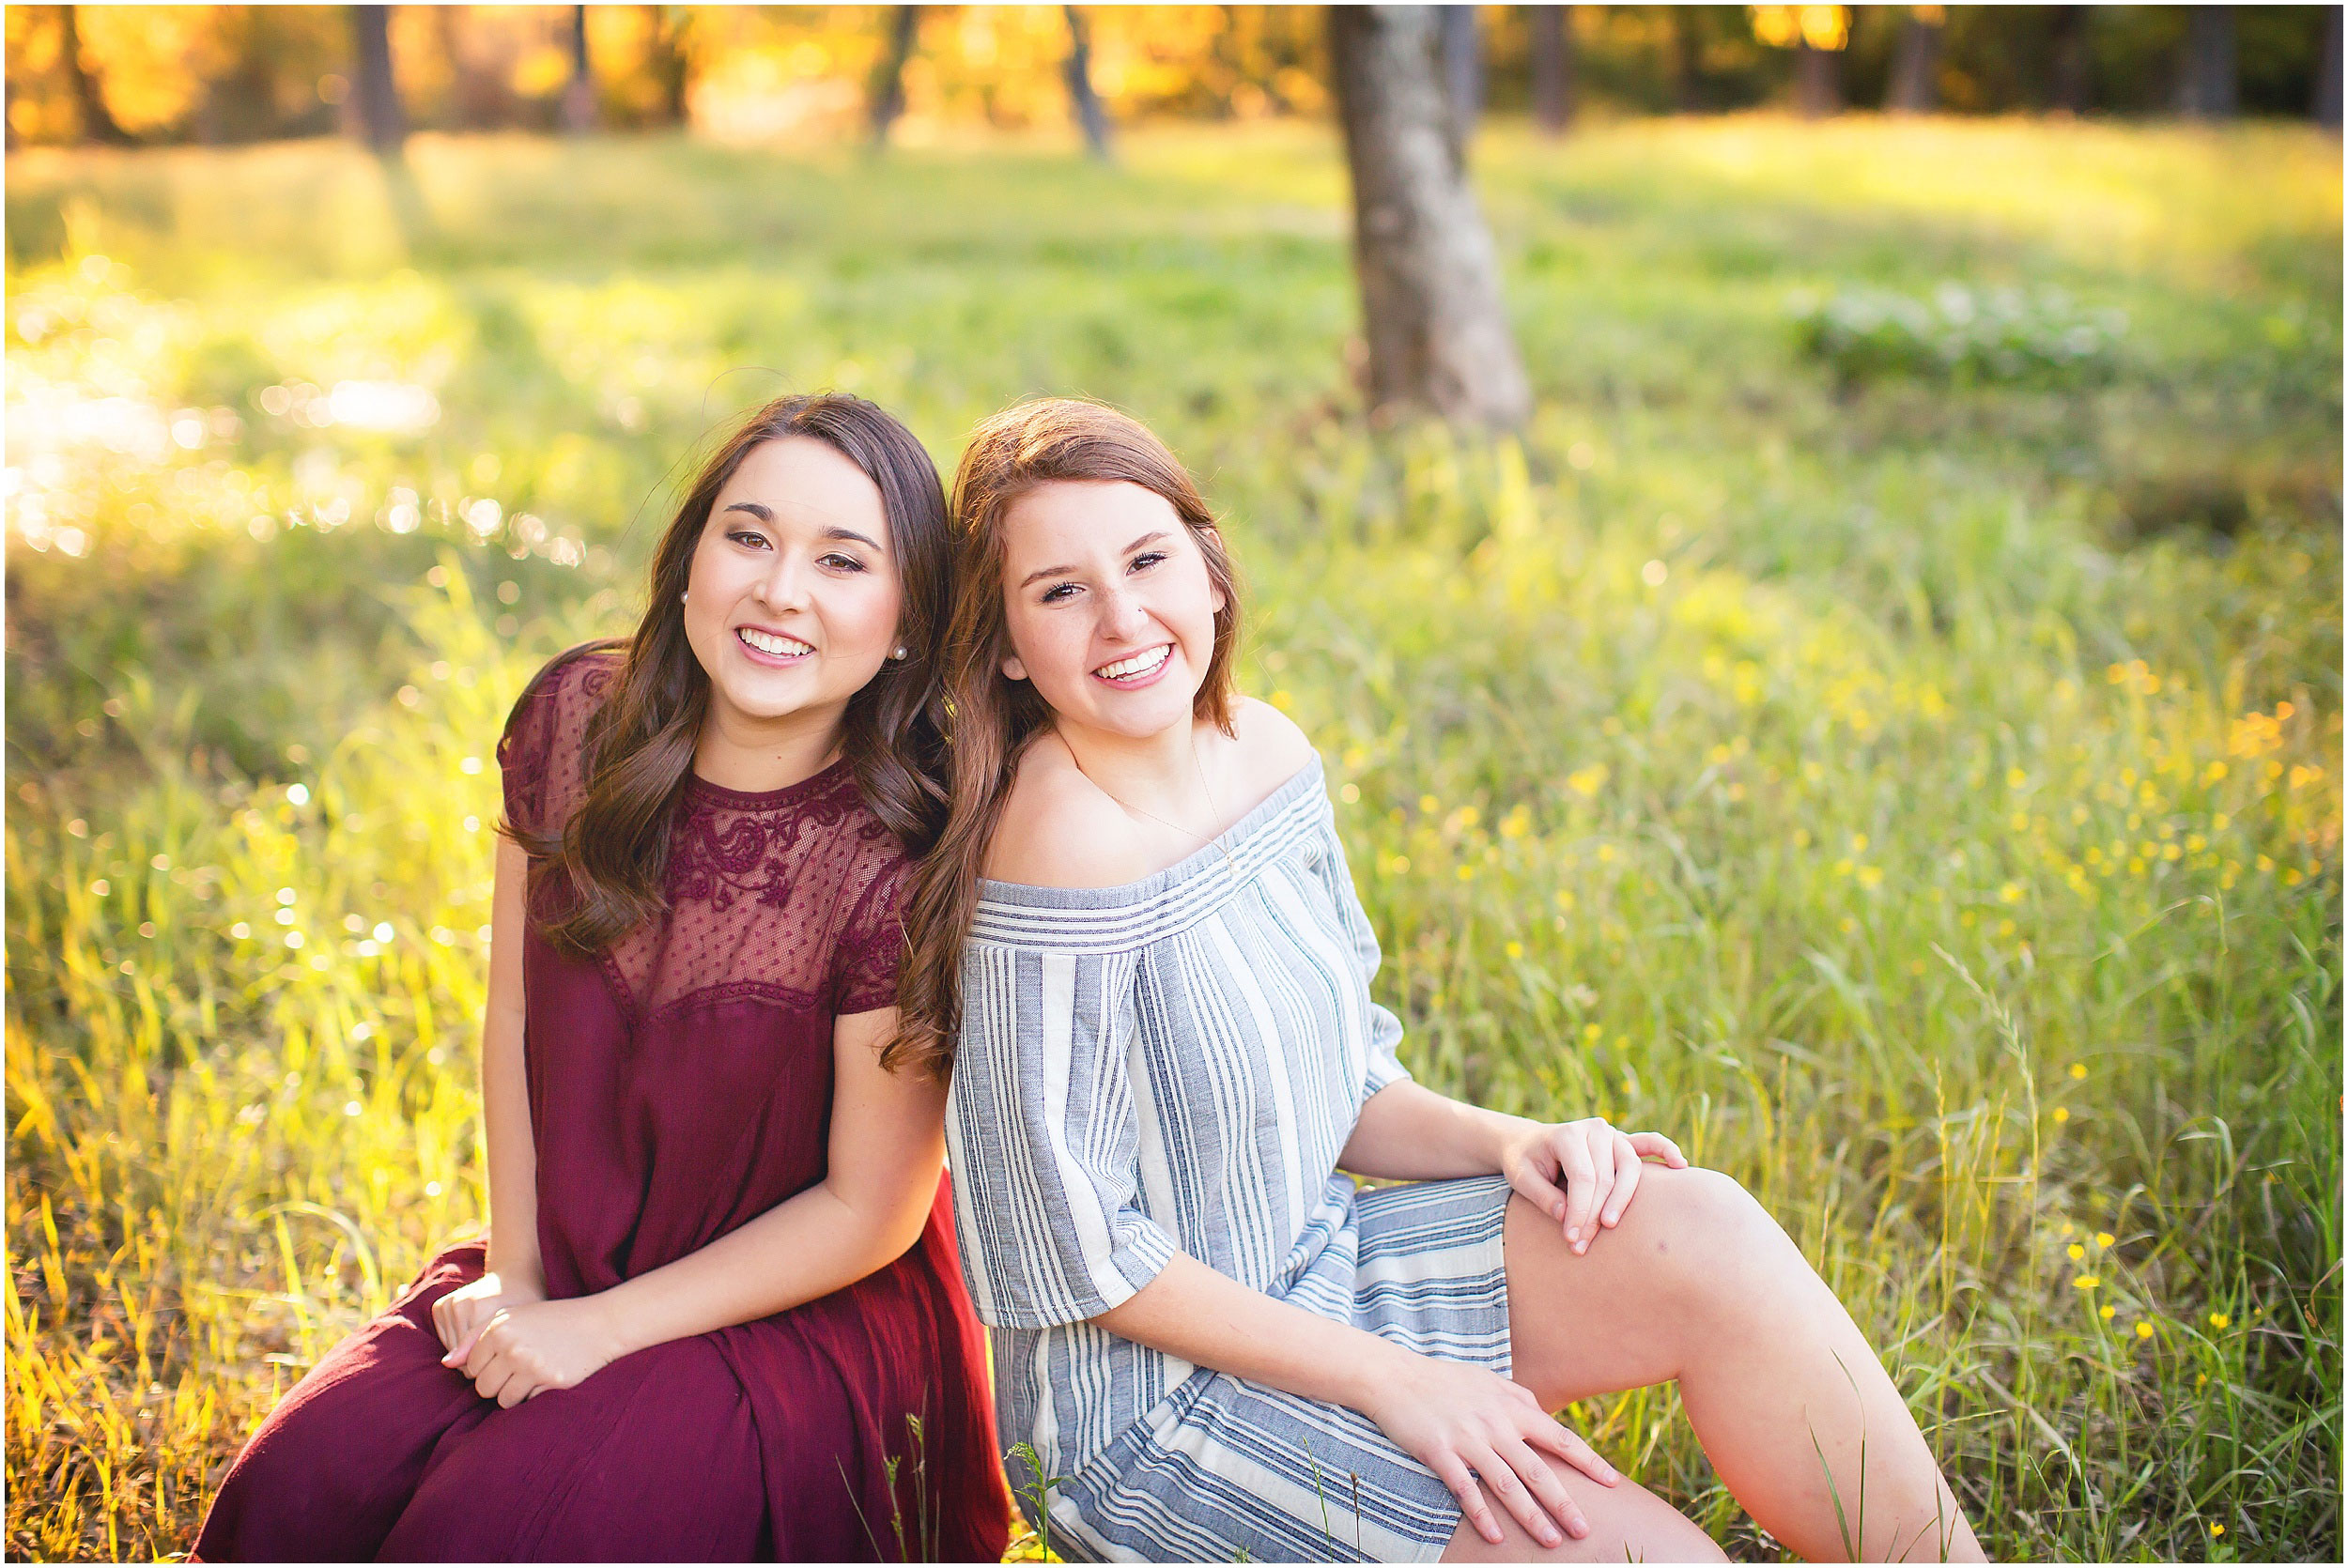 Outdoor photo shoot featuring high school seniors and best friends in The Woodlands, Texas by spryART photography.